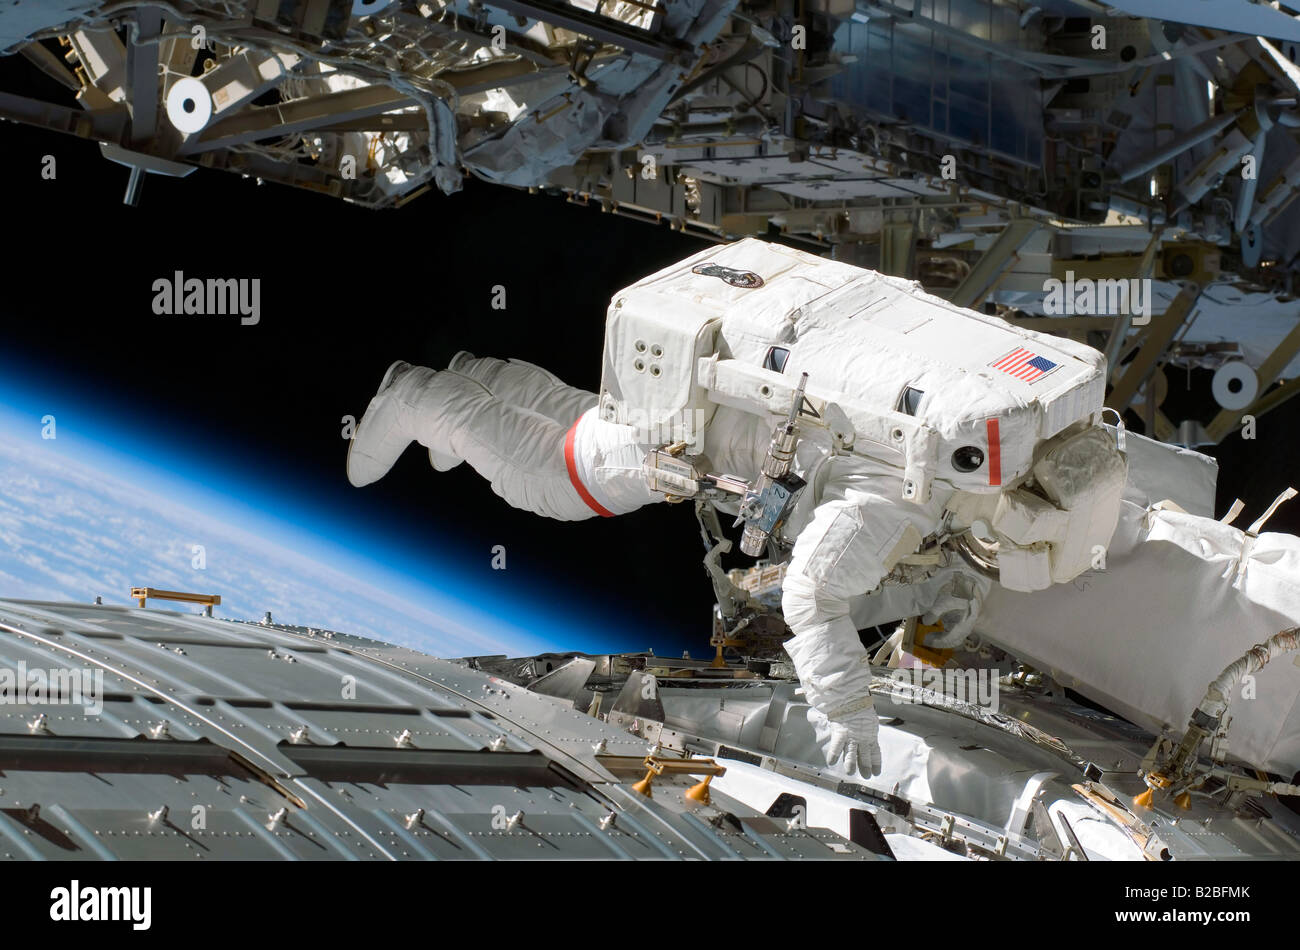 Astronaut participates in extravehicular activity during STS-124. - Stock Image